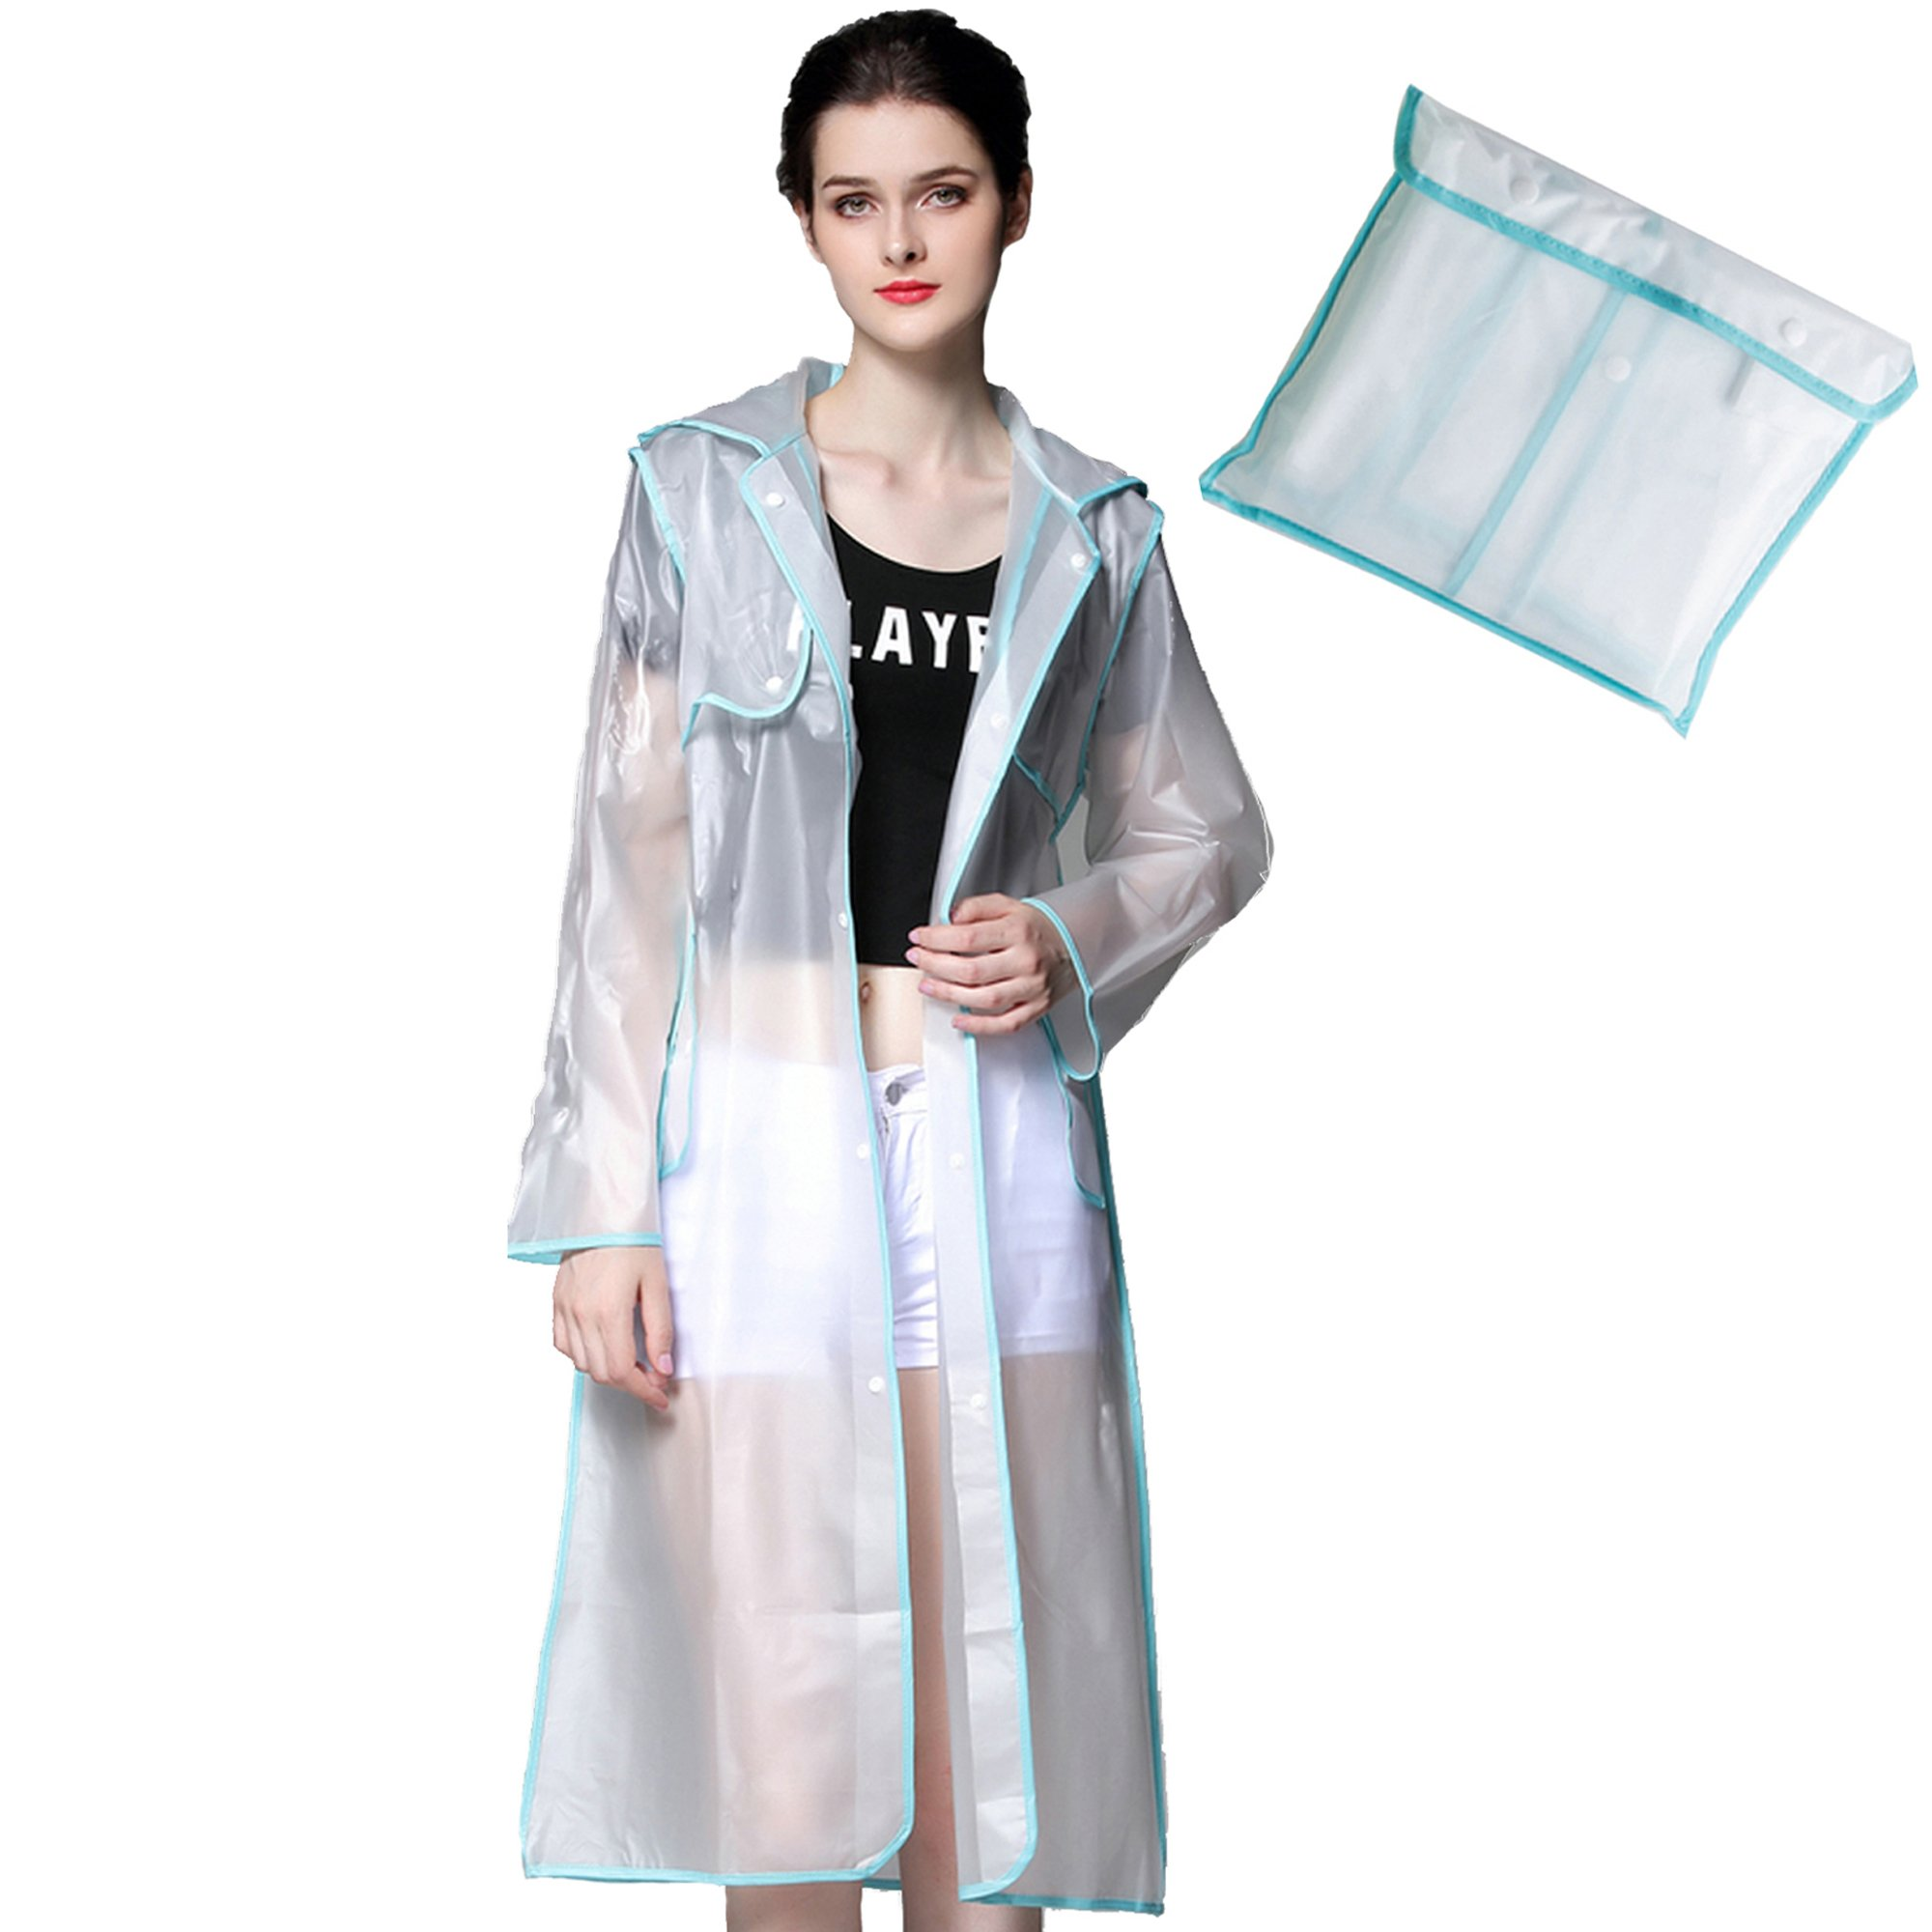 Womens Waterproof Hooded Raincoat Lightweight Easy Carry Semi-transparent Poncho Runaway Style Reusable Rainwear Blue Large